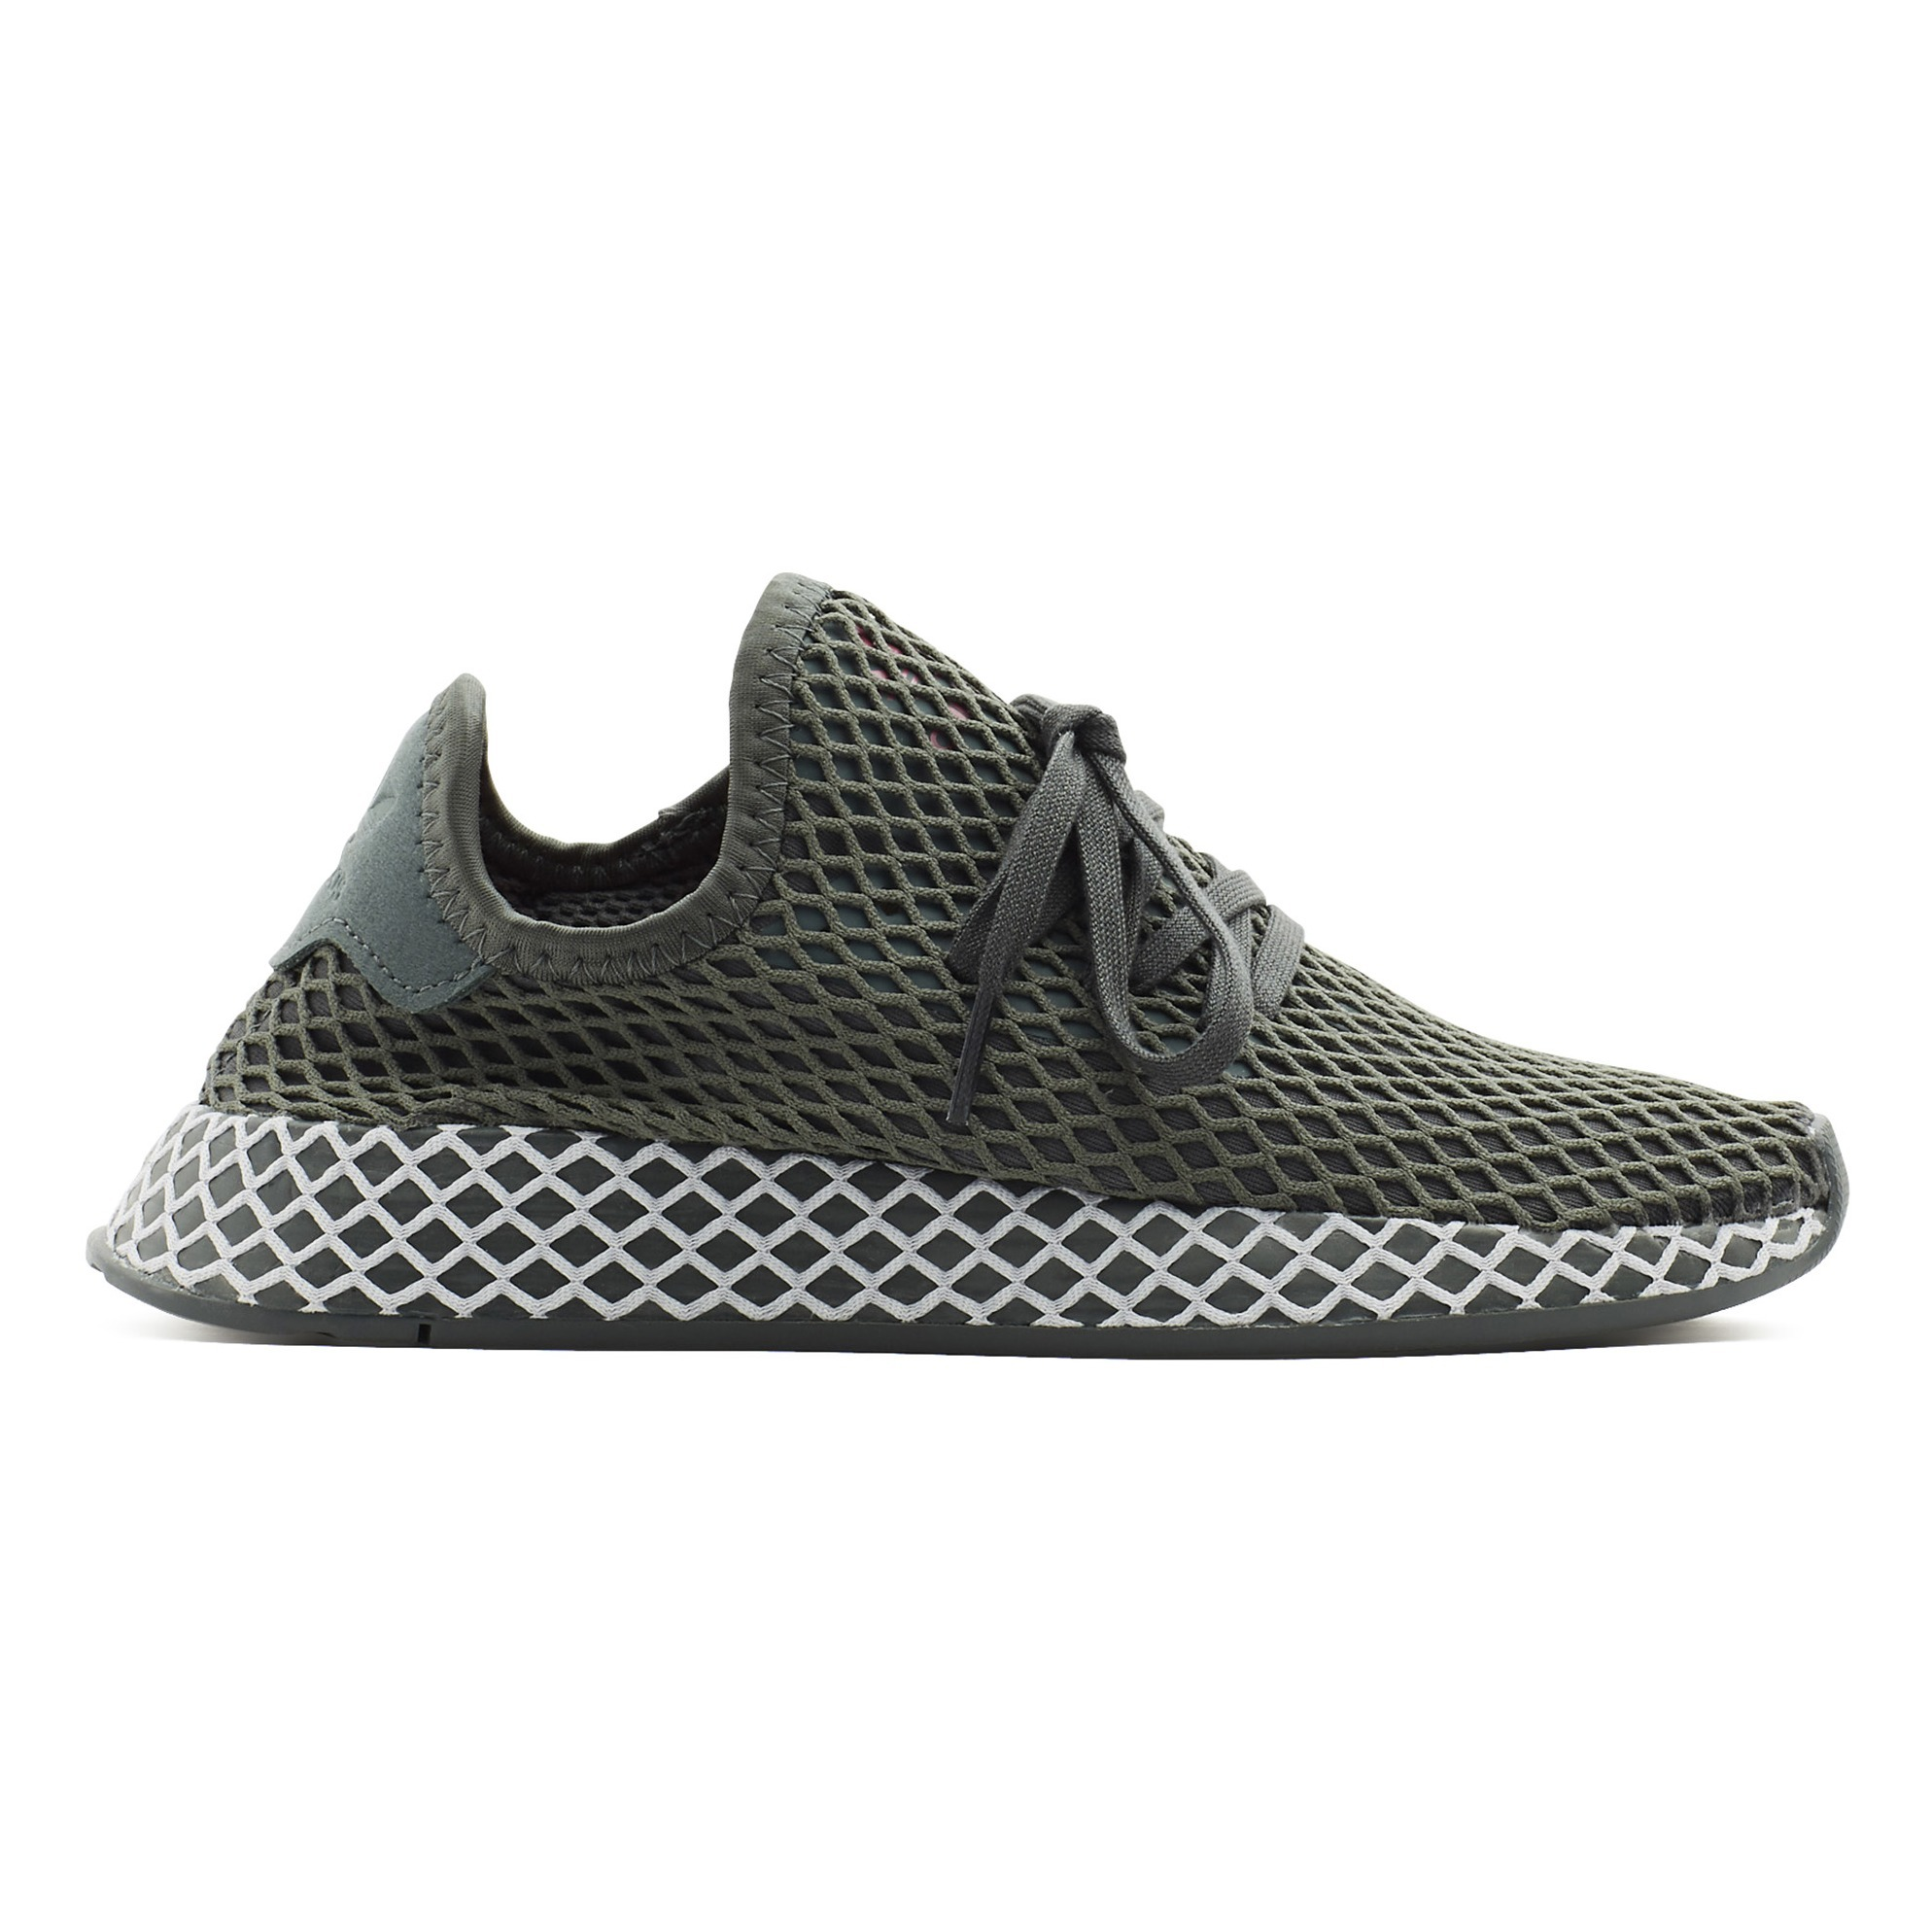 new product c6b7f e9290 Baskets Deerupt Runner Gris anthracite Adidas Chaussure. «